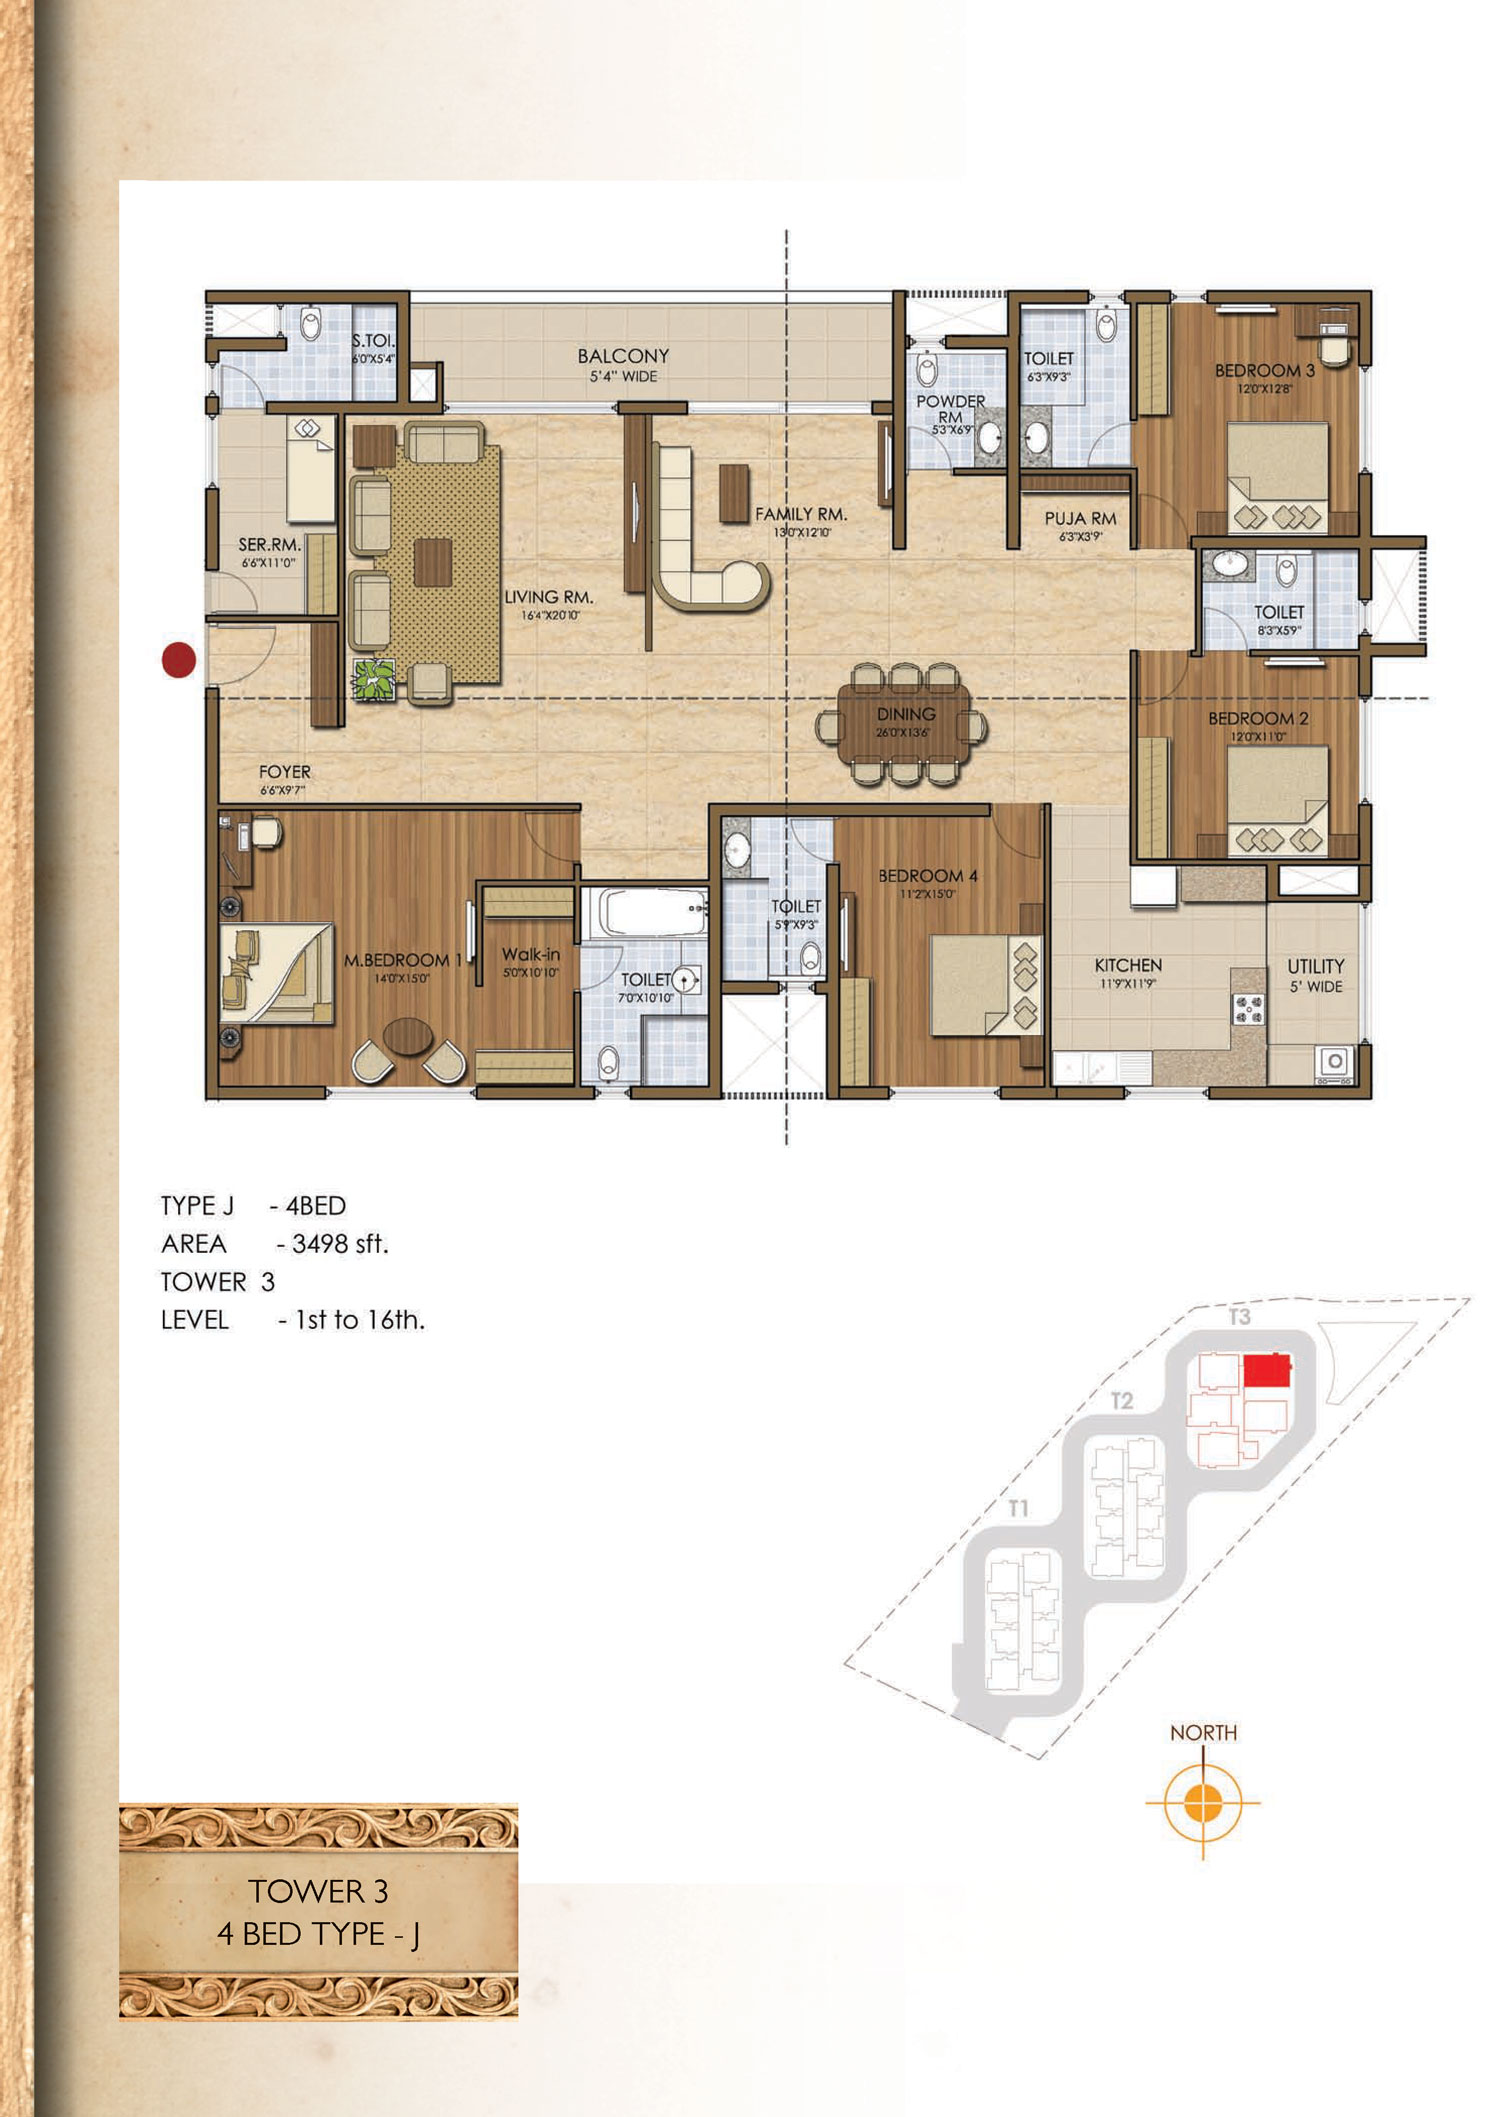 Type J - 3498 Sq Ft